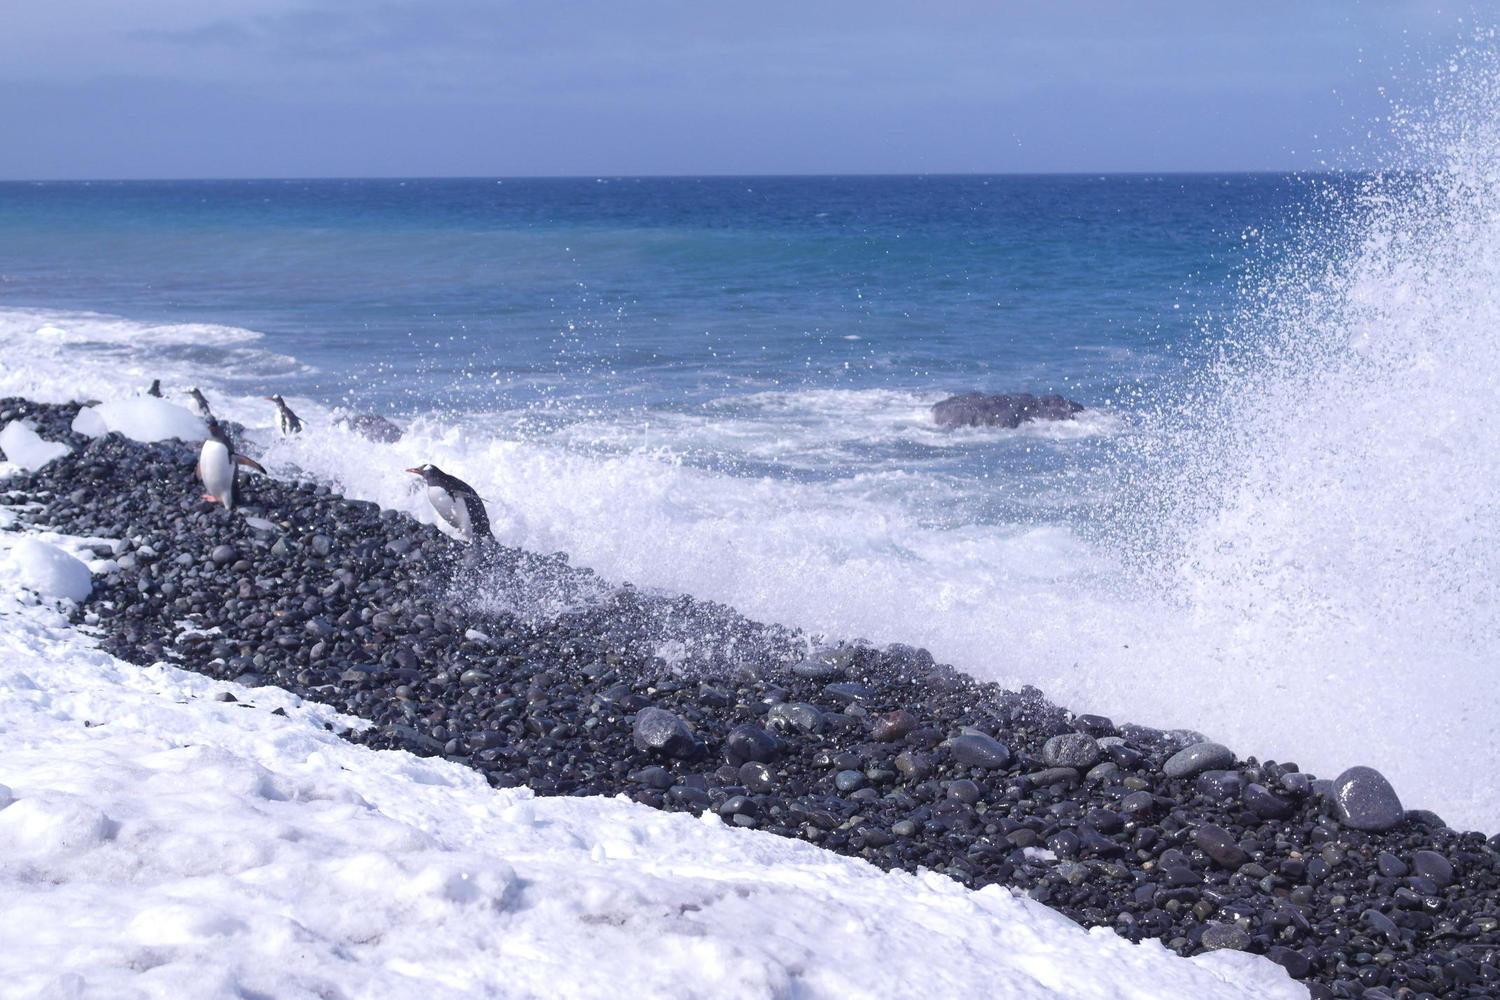 Gentoo penguins ride the surf onto shore at Yankee Harbour